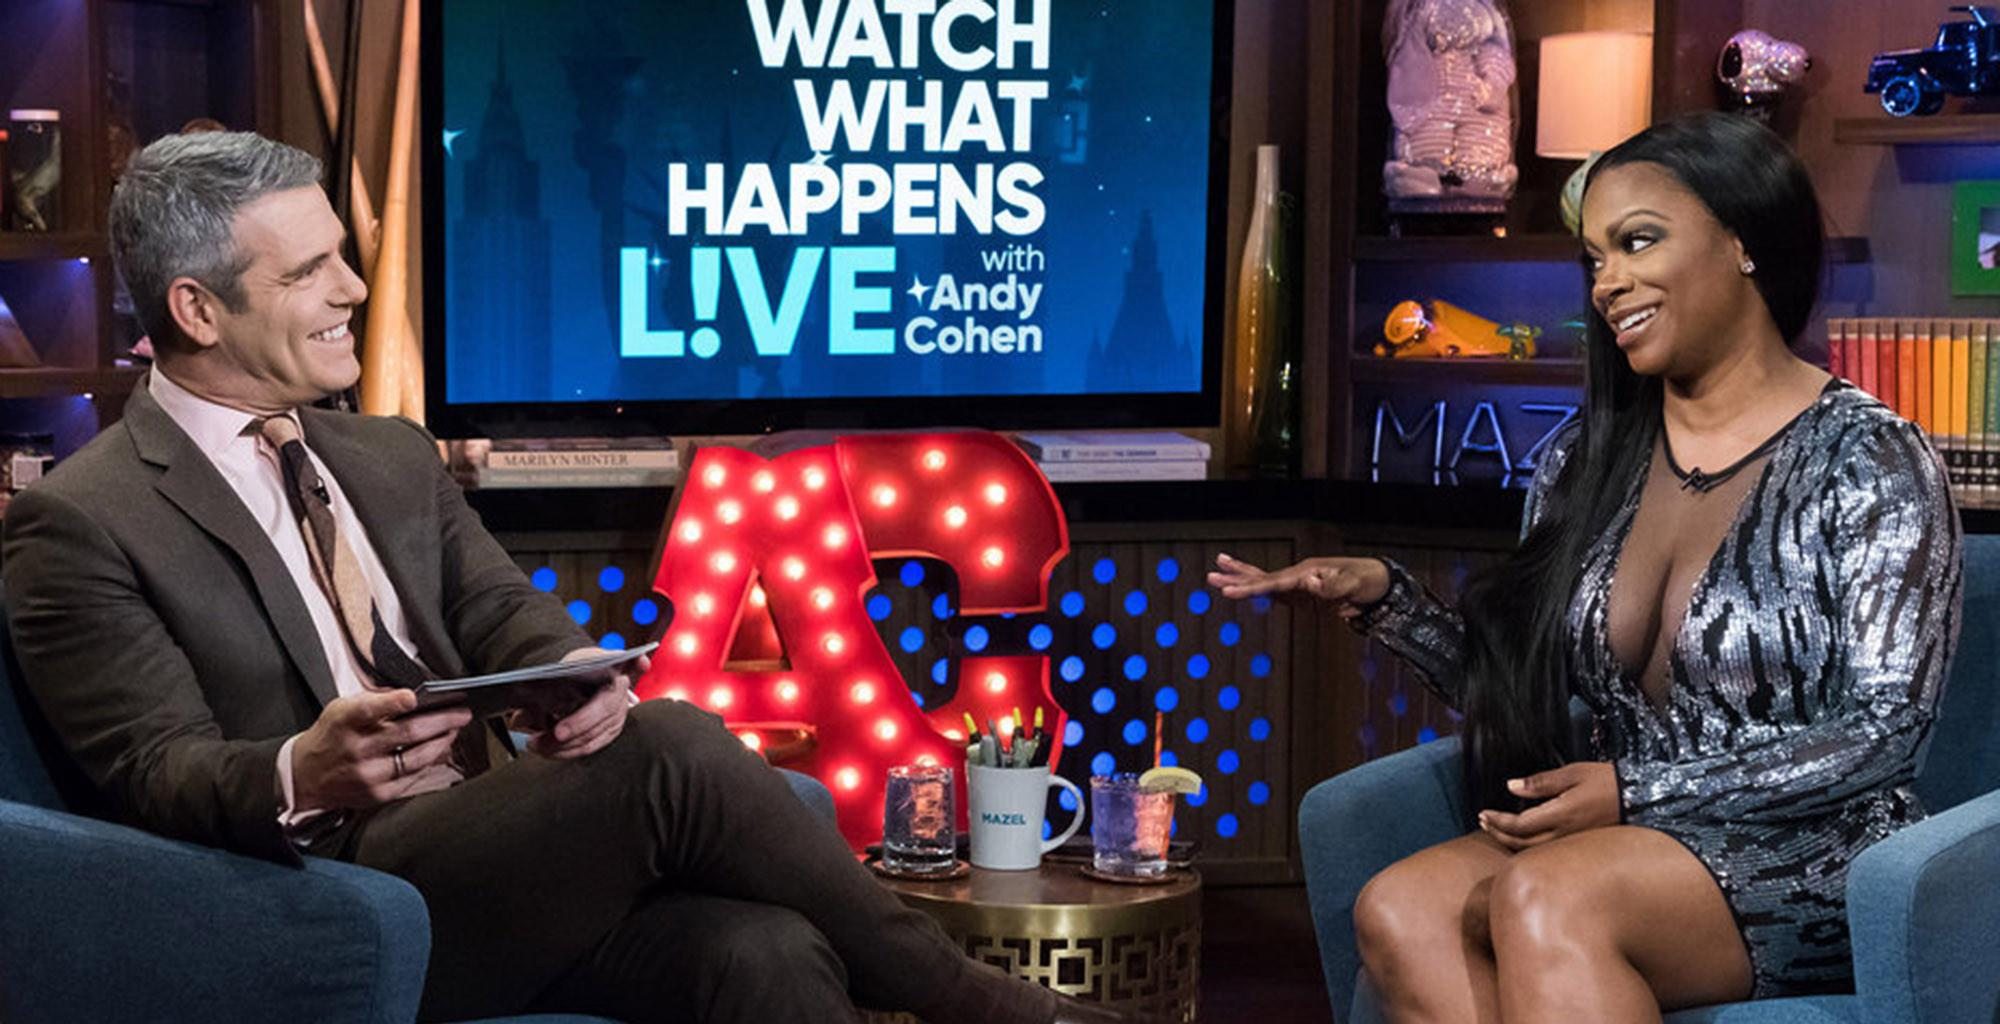 Kandi Burruss And Andy Cohen Get Emotional While Talking About Surrogacy